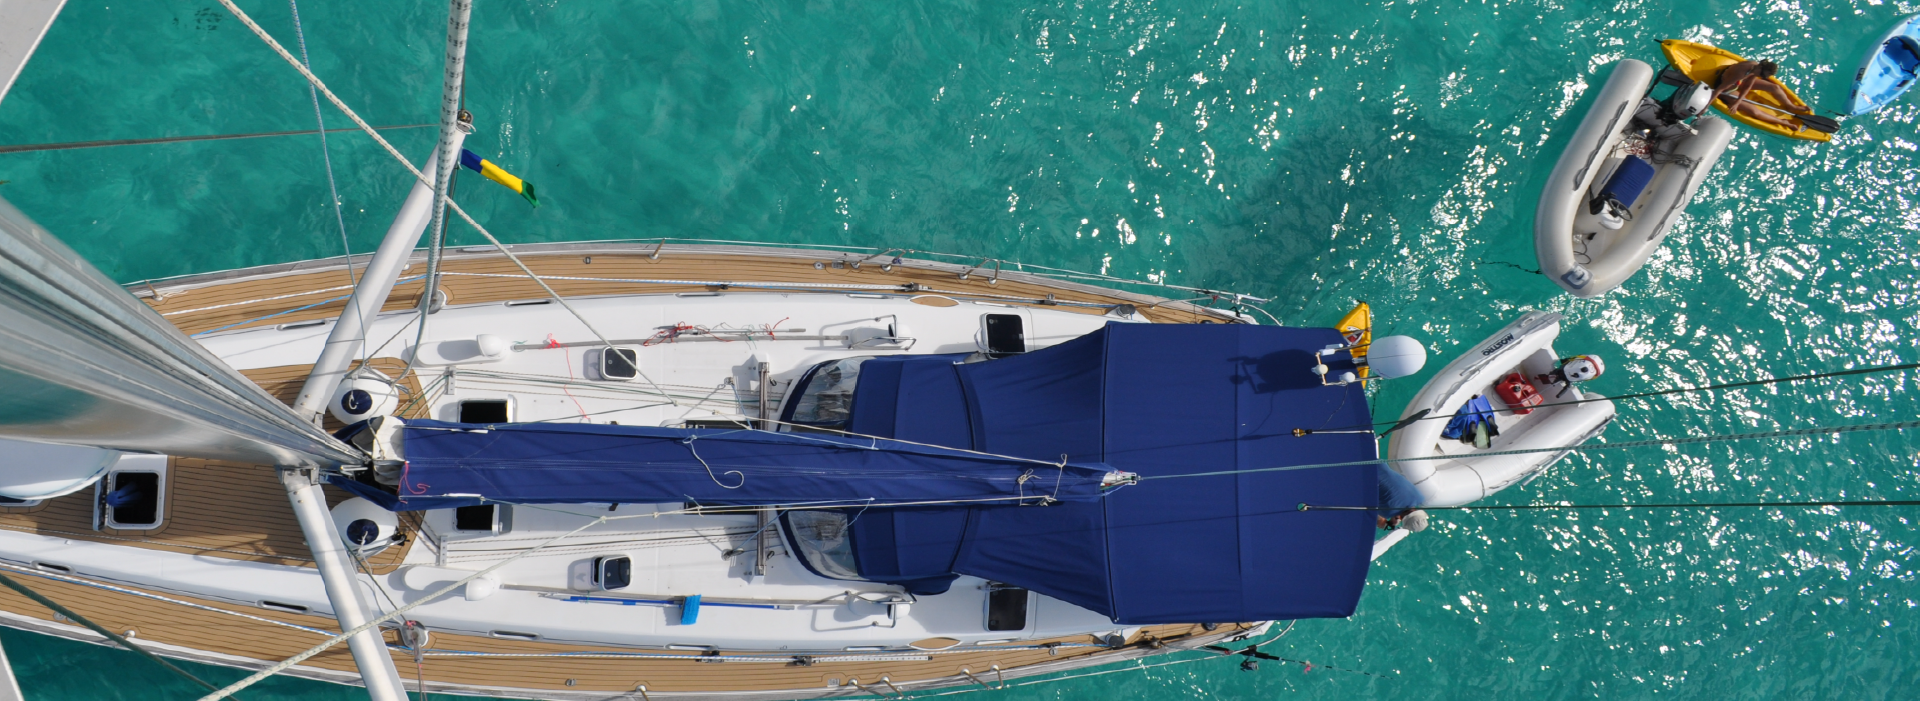 Sail Ionian Yacht Blue Spirit (50ft)